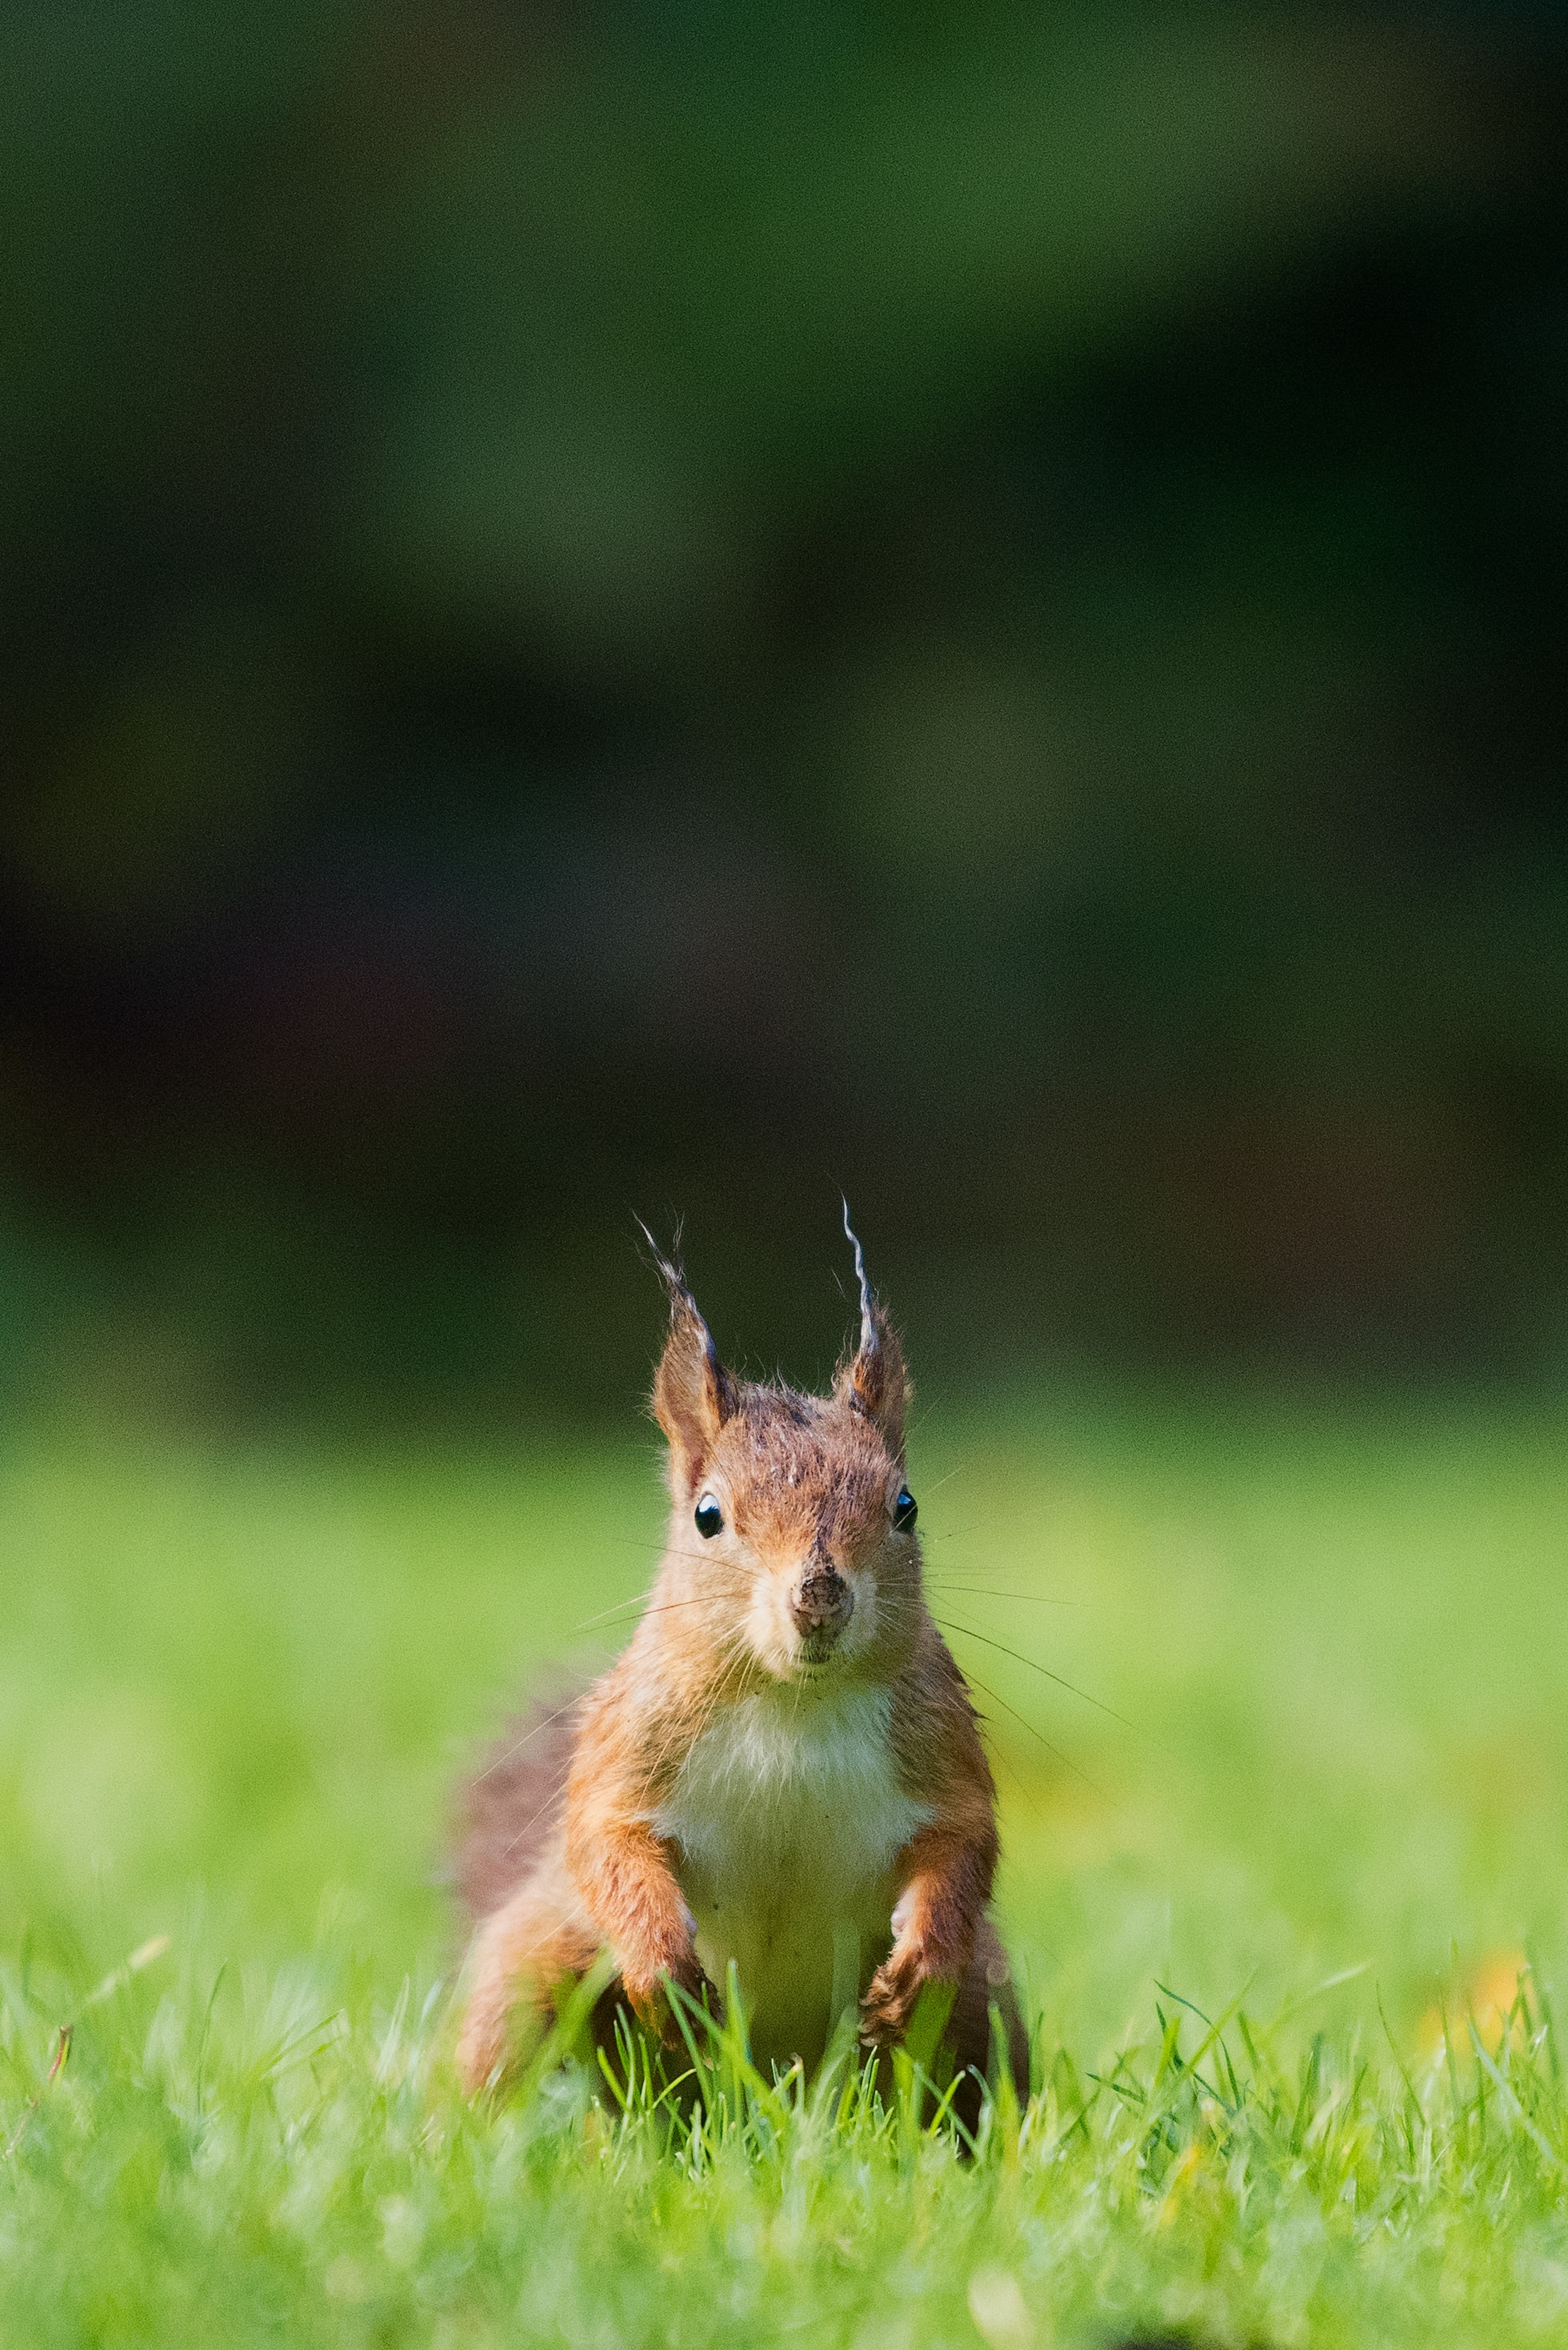 brown squirrel standing on the grass field